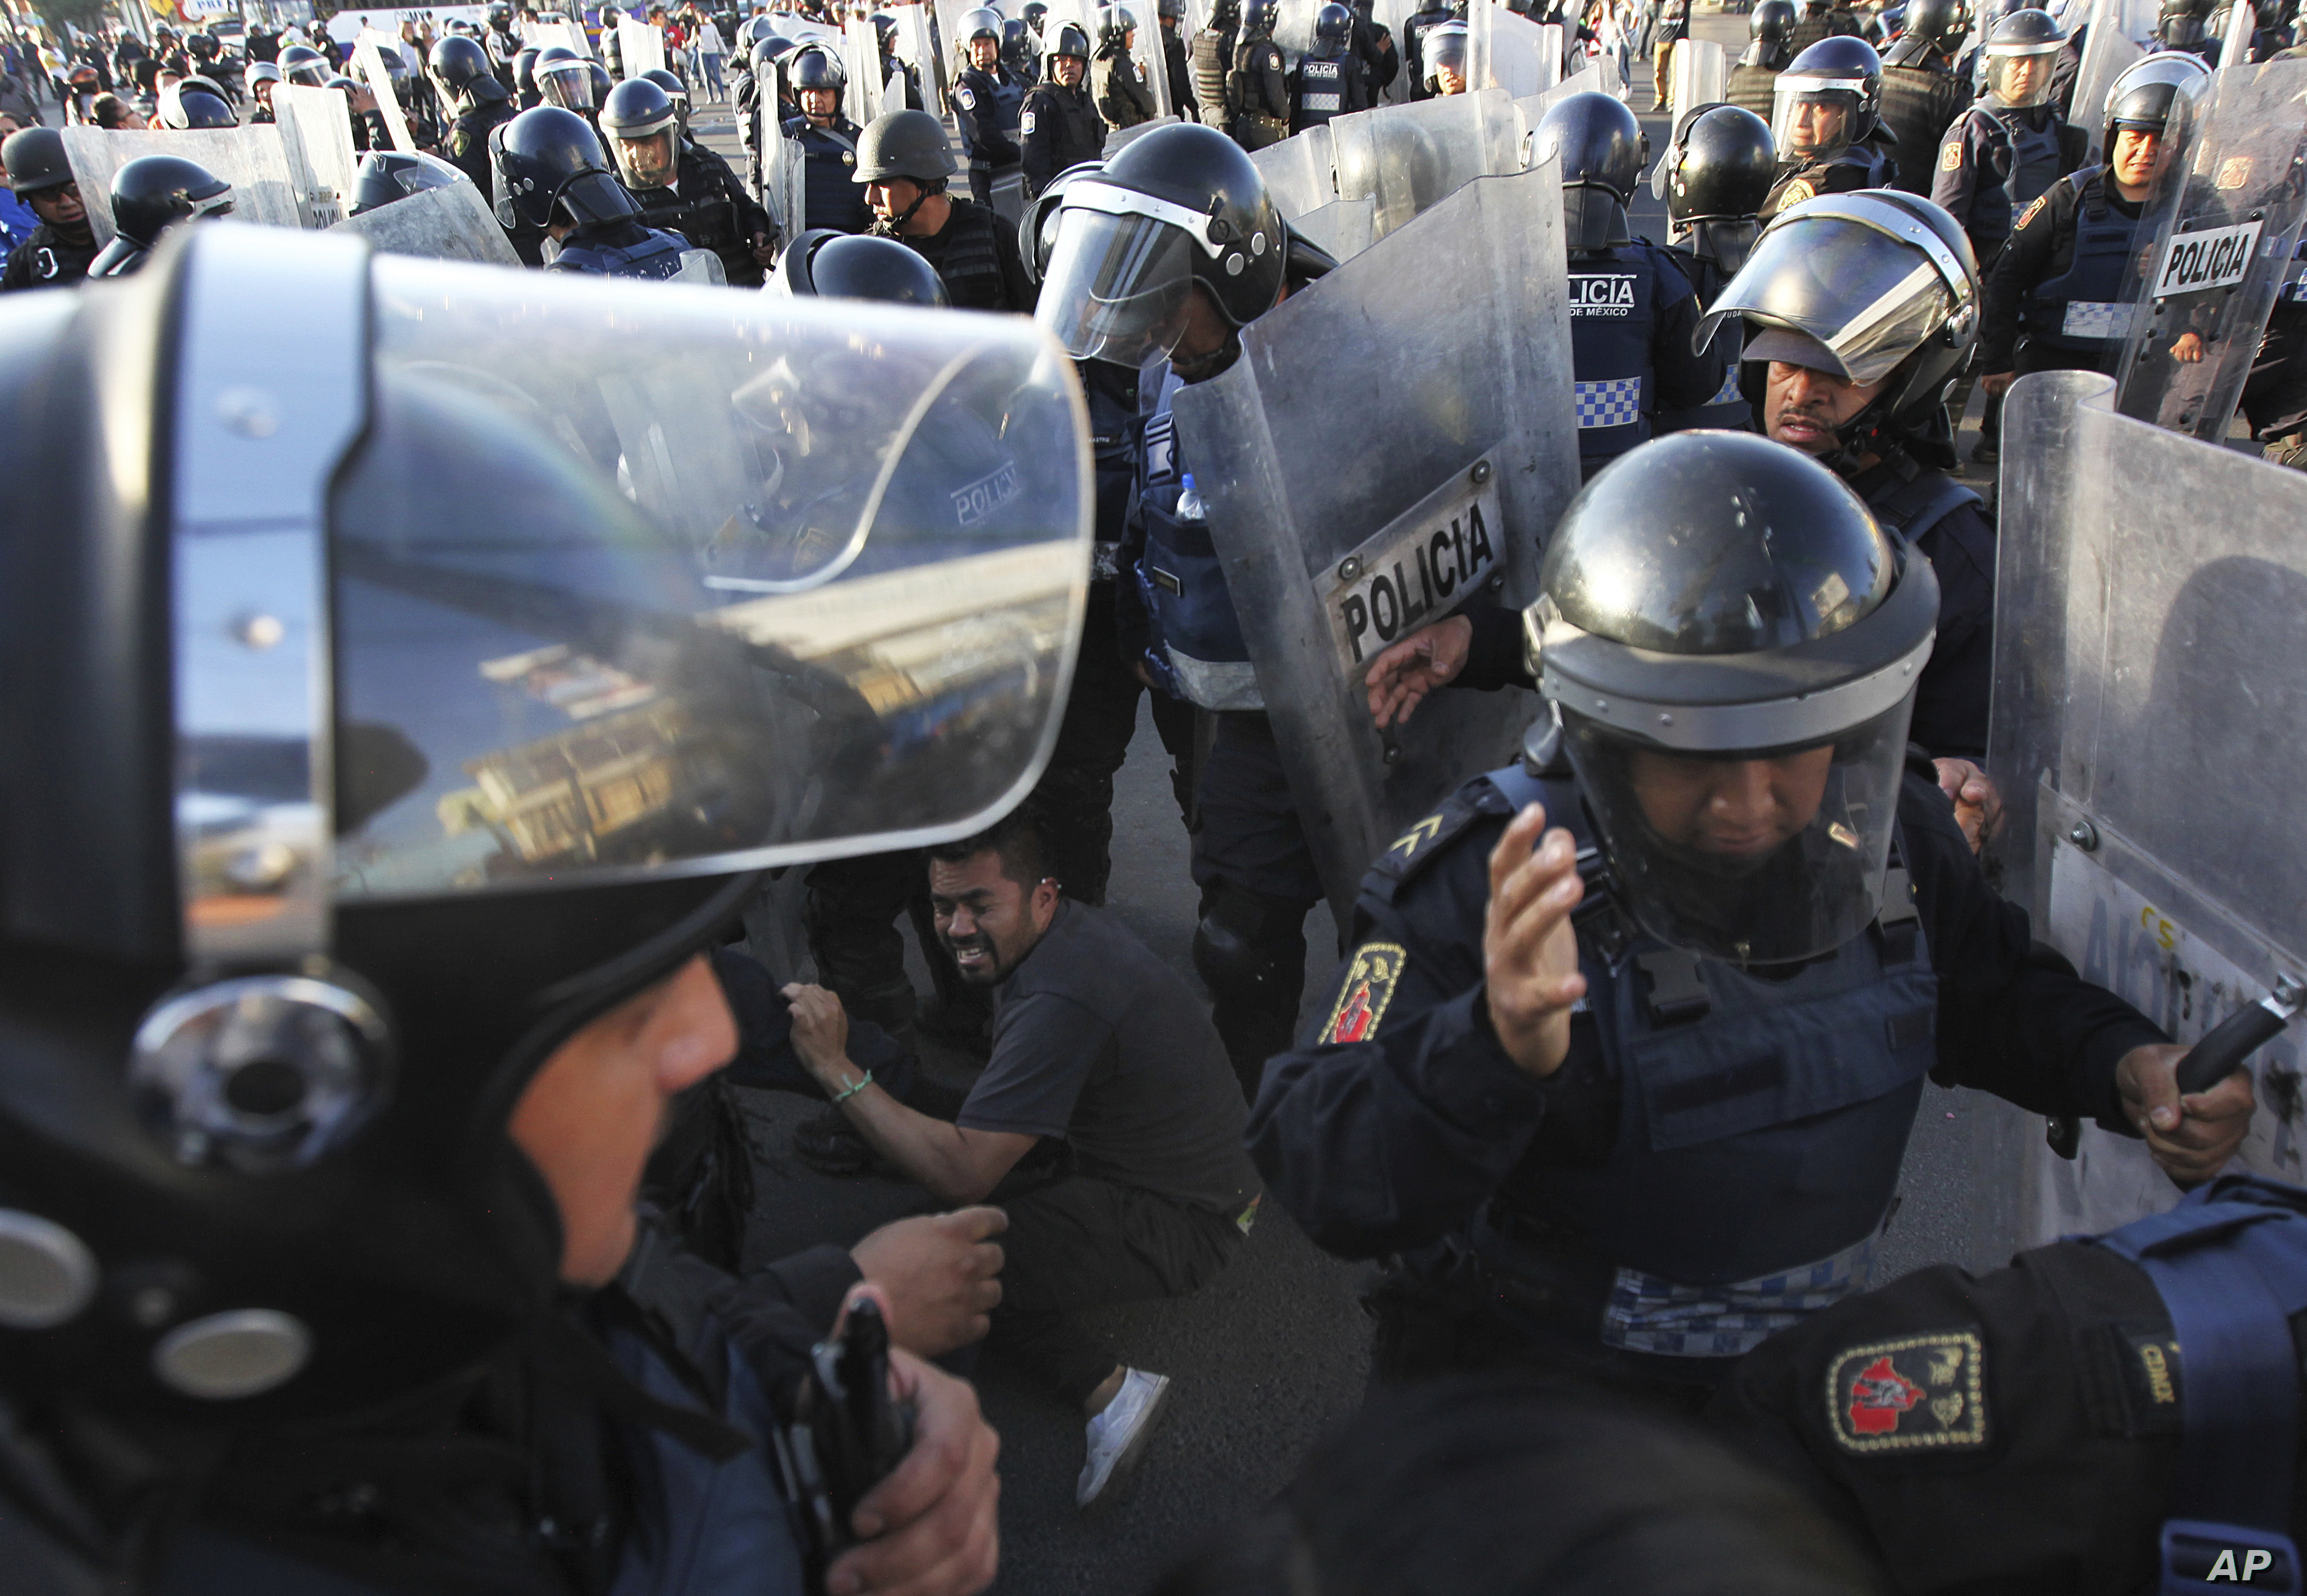 Police forcibly remove demonstrators who blocked a main road for about an hour as they protest hikes in gas prices in Mexico City, Jan. 4, 2017. Protesters have blocked highways, distribution terminals and gas stations since fuel prices went up by a...